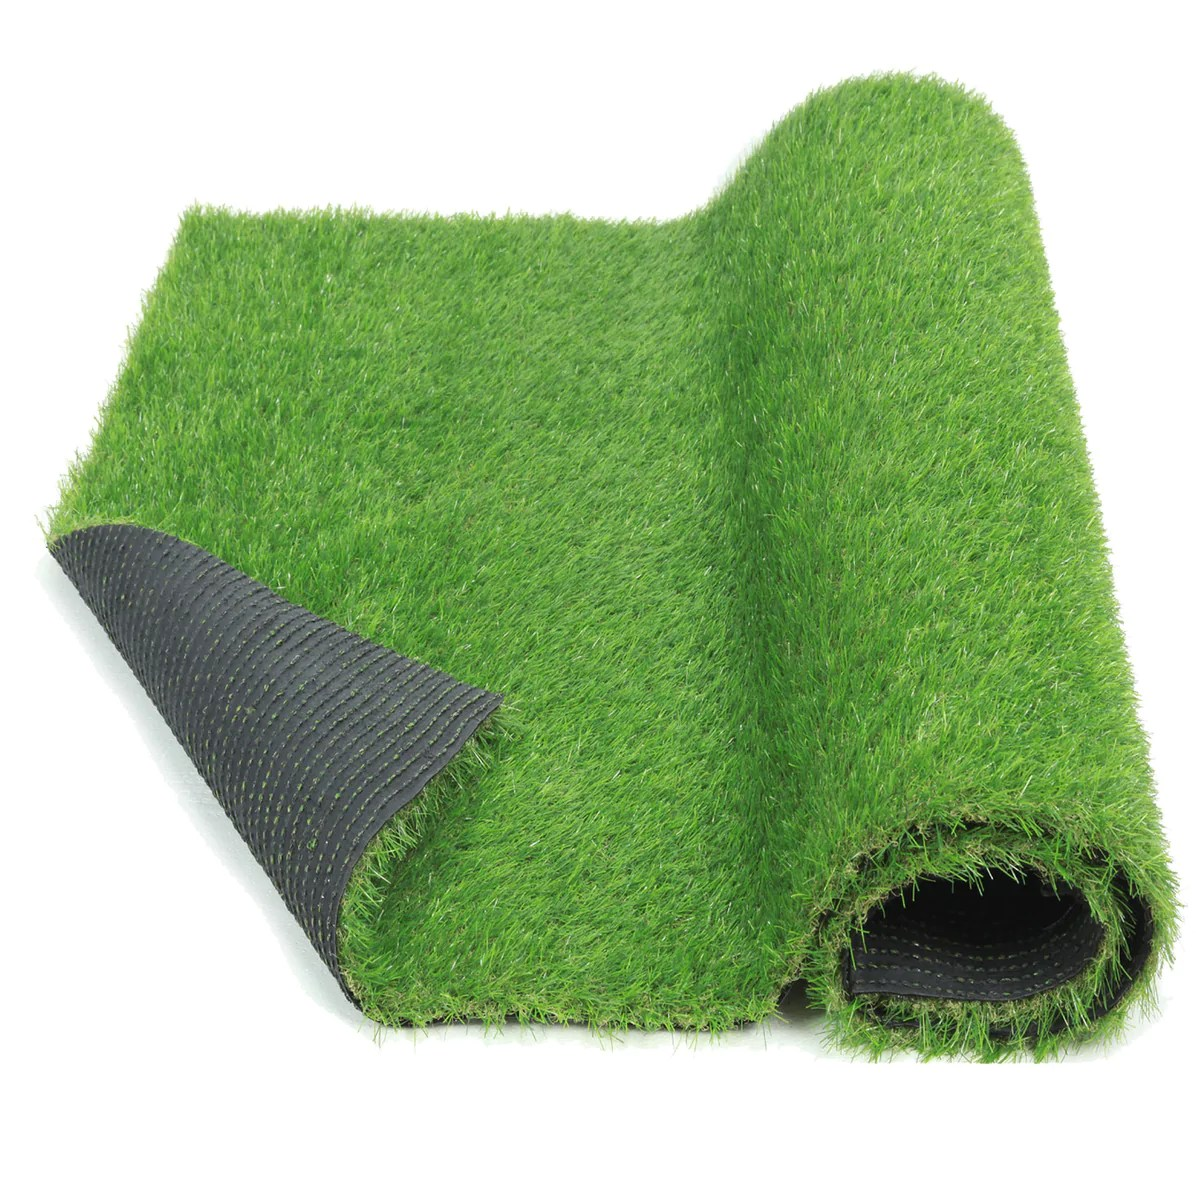 Buy Fake Grass Eco Matrix Artificial Grass Rug Fake Grass Carpet Green Lawn Mats Realistic Indoor Outdoor Grass Runner Landscape Synthetic Grass Turf For Dog